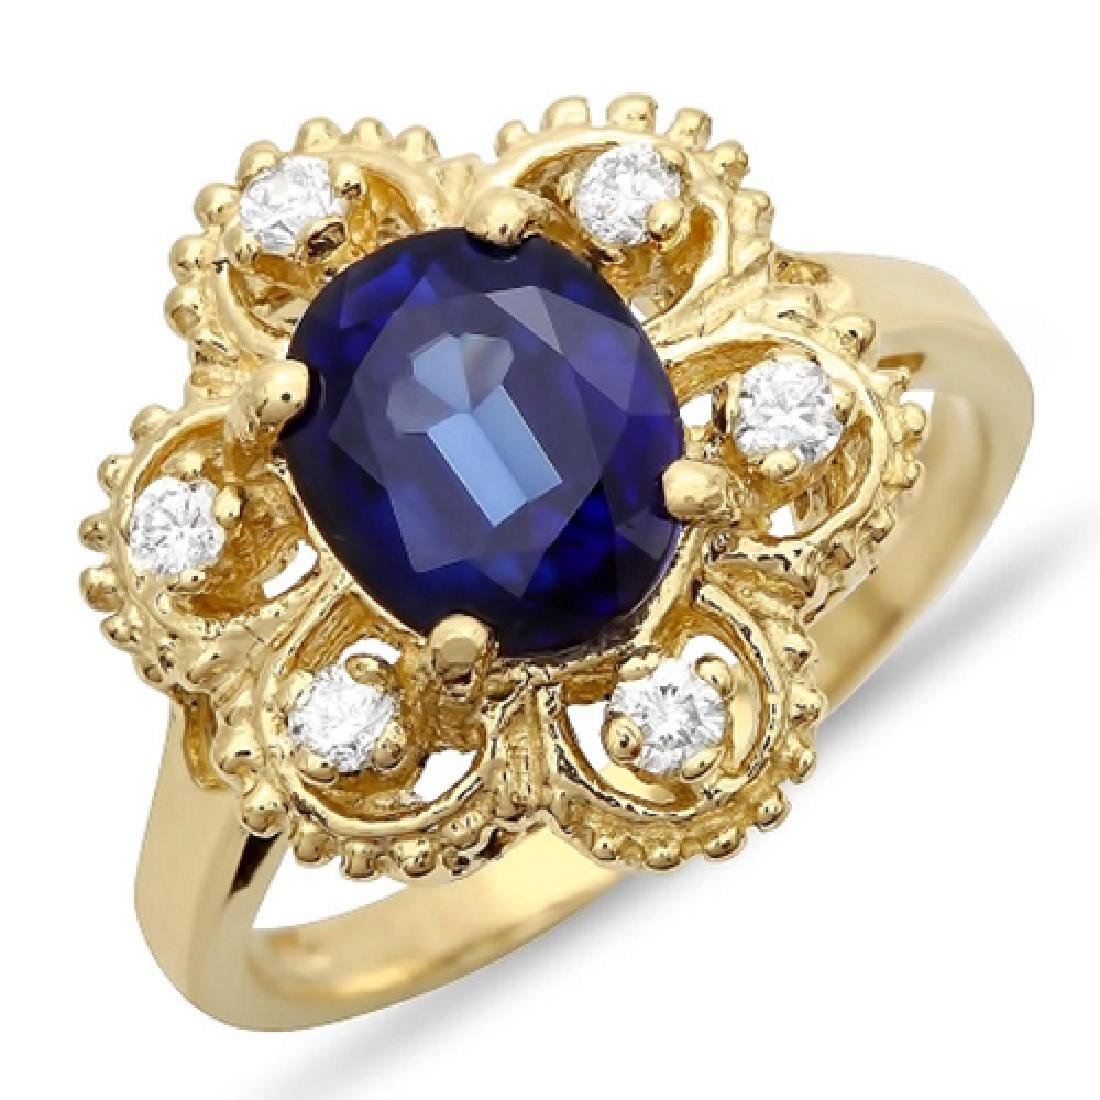 2.75 Carat Natural Sapphire 18K Solid Yellow Gold